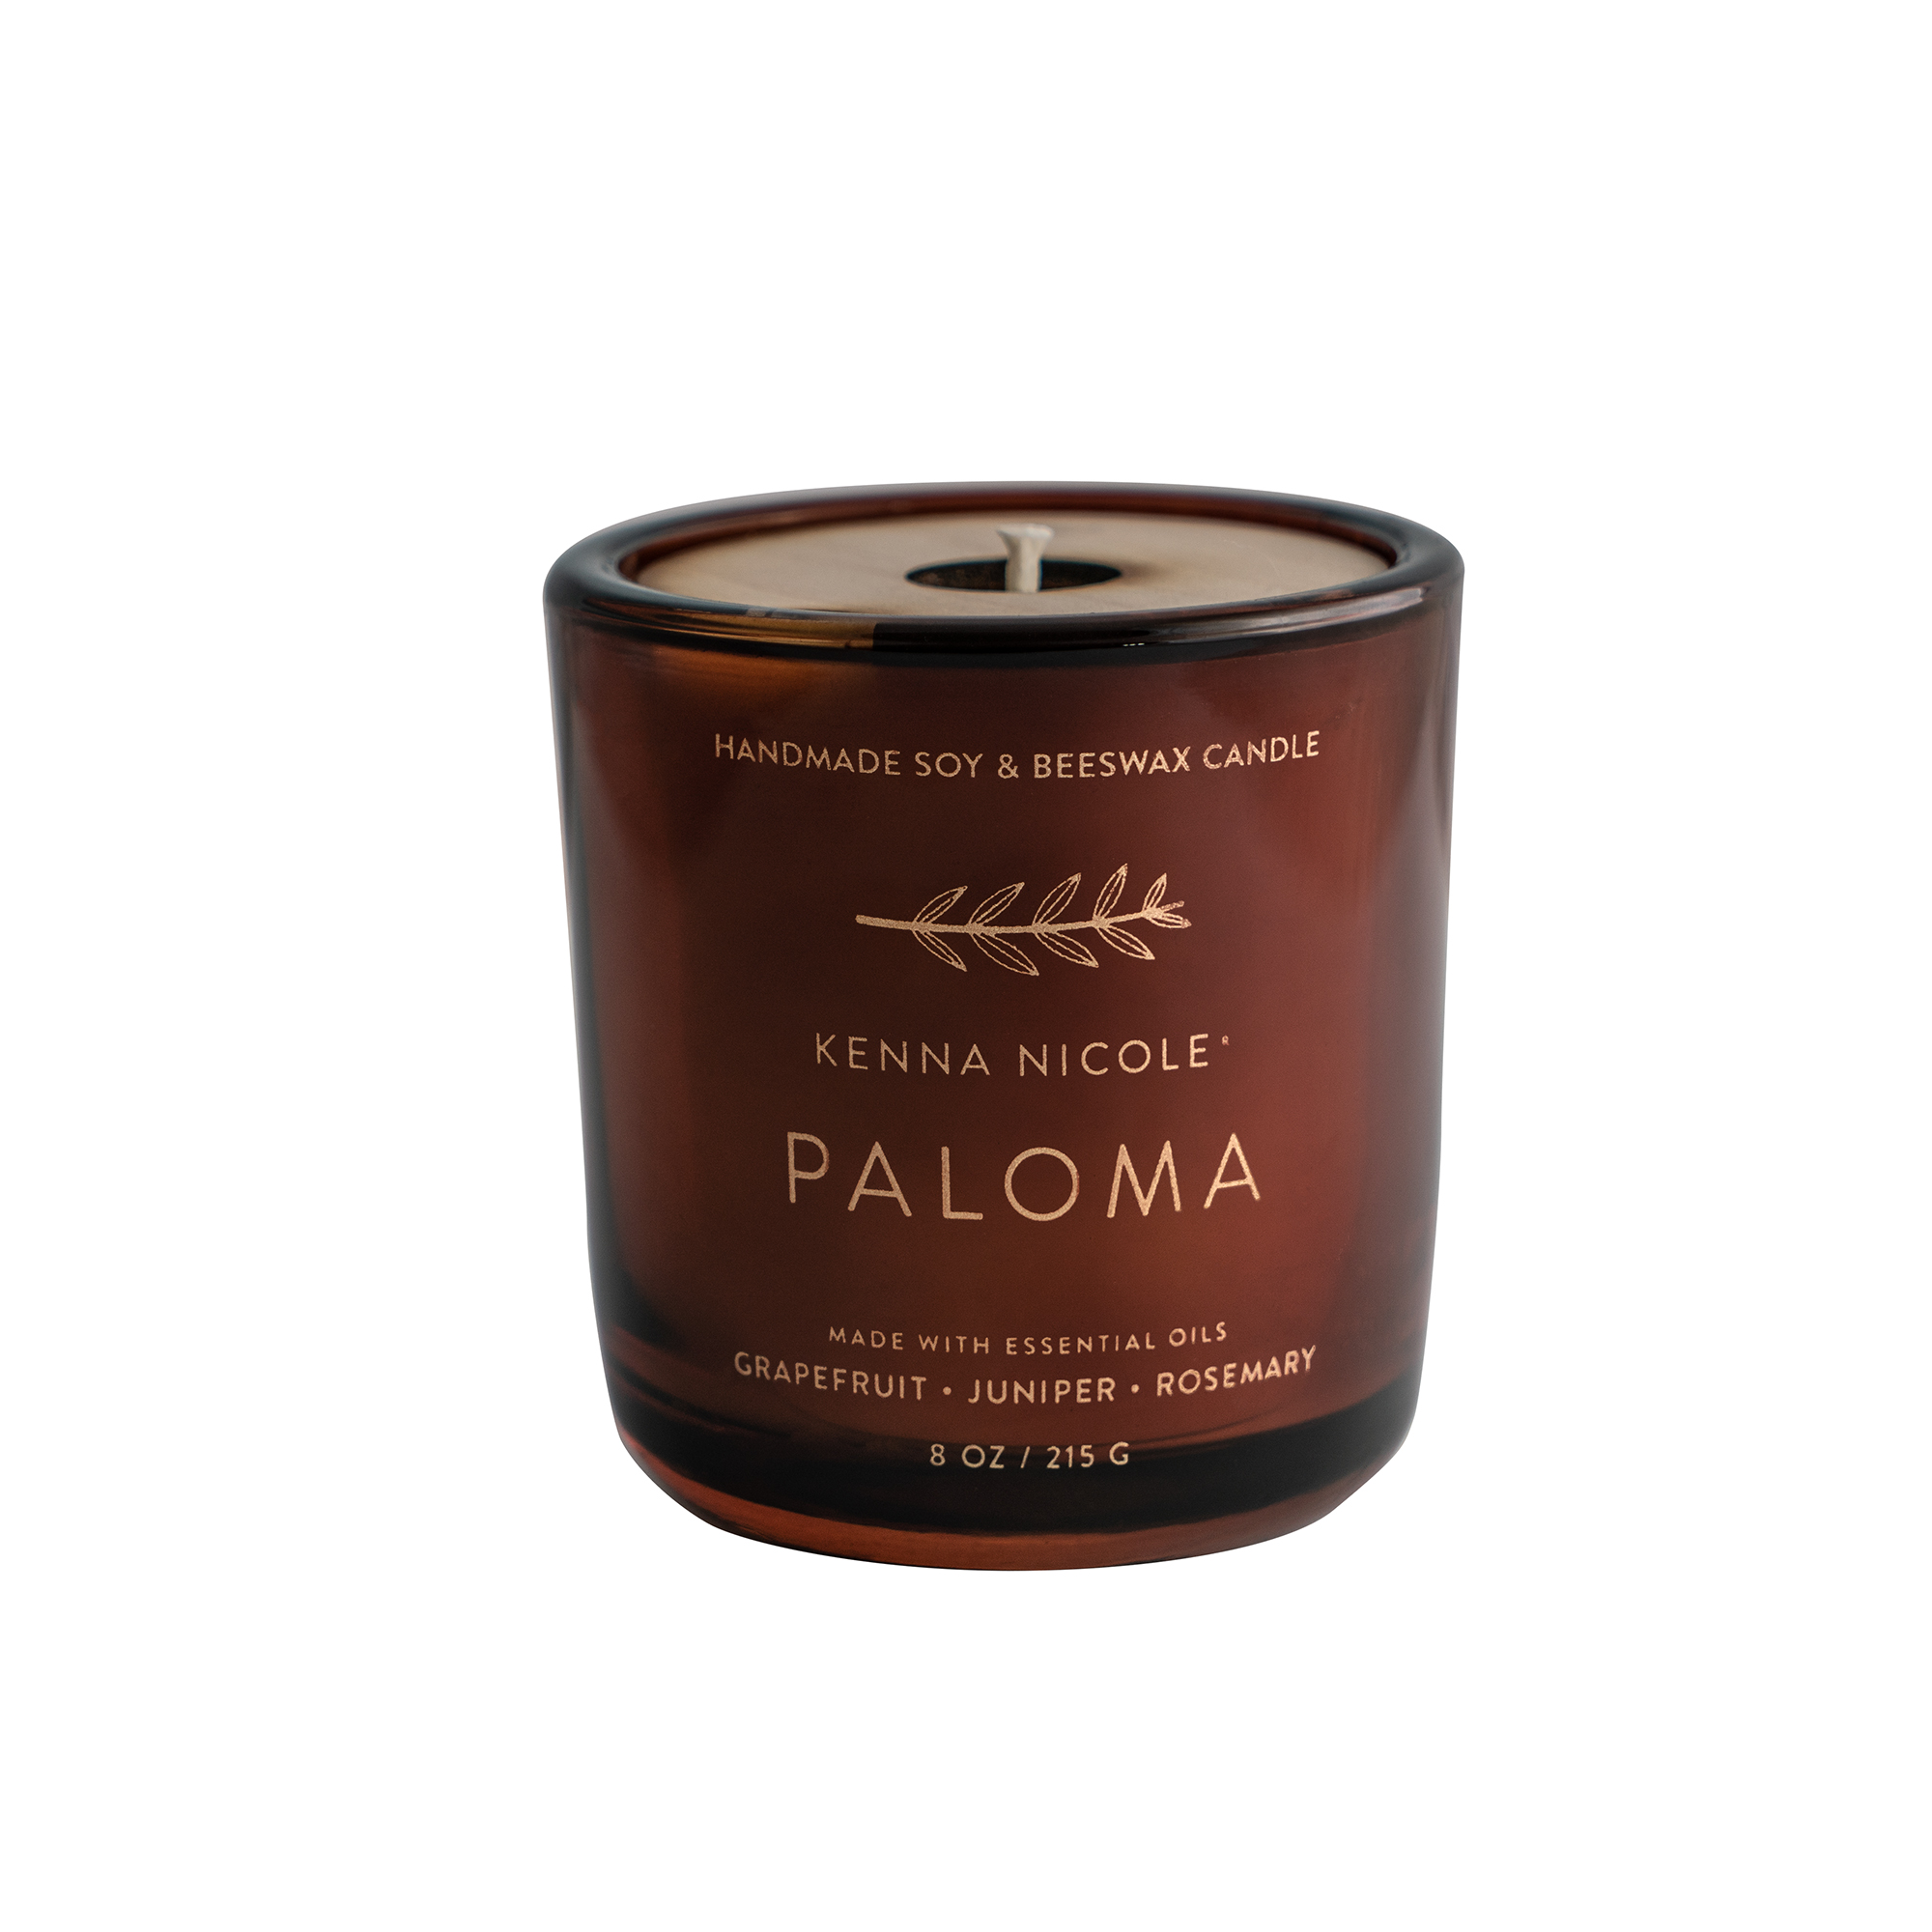 Kenna Nicole PALOMA Soy + Beeswax Candle